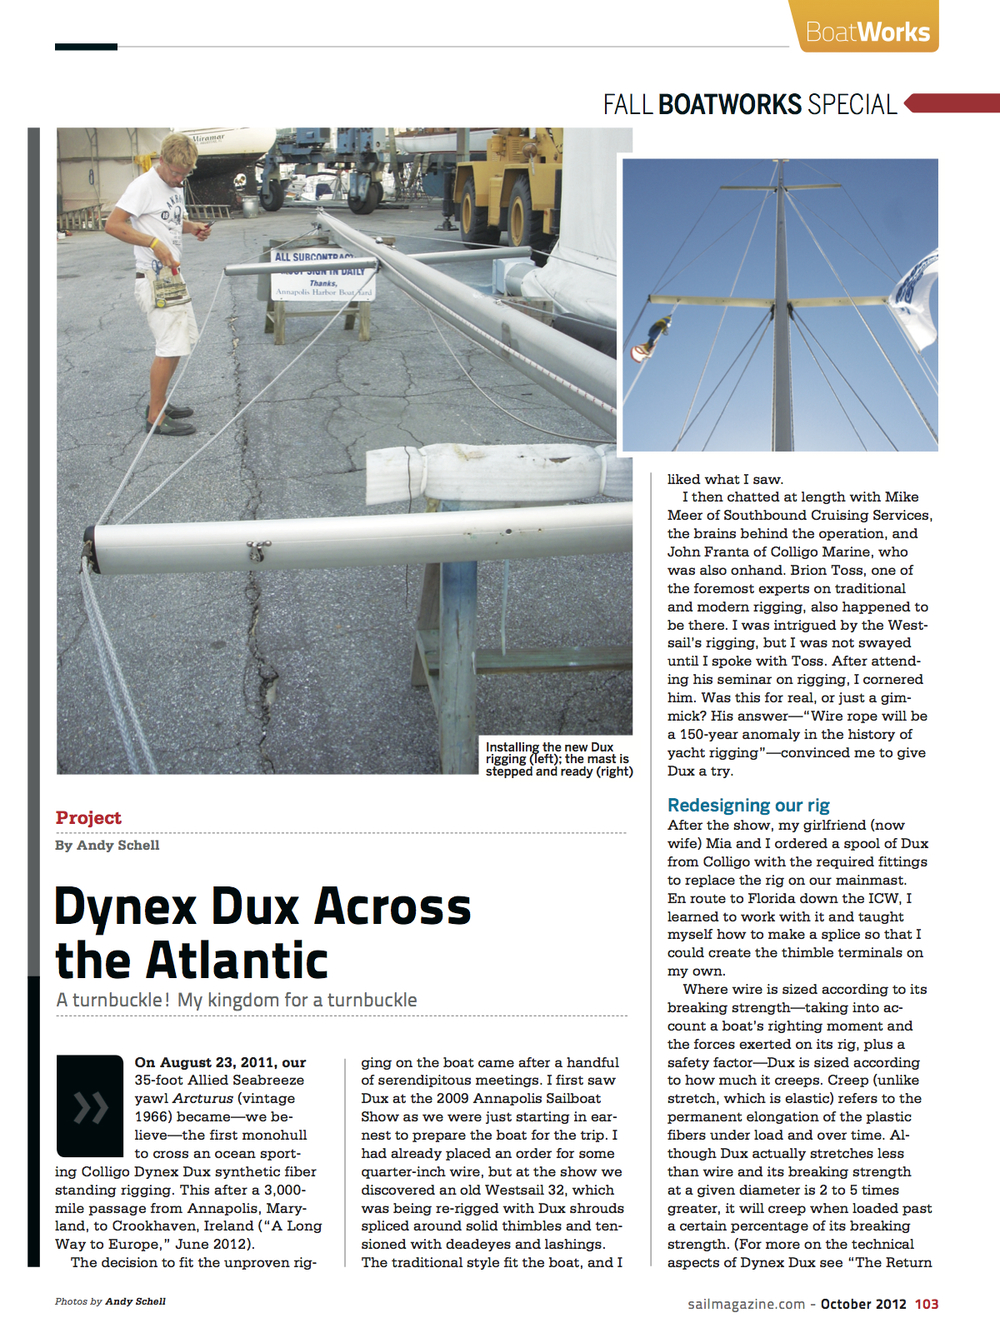 SAIL: Dynex Dux Across the Atlantic